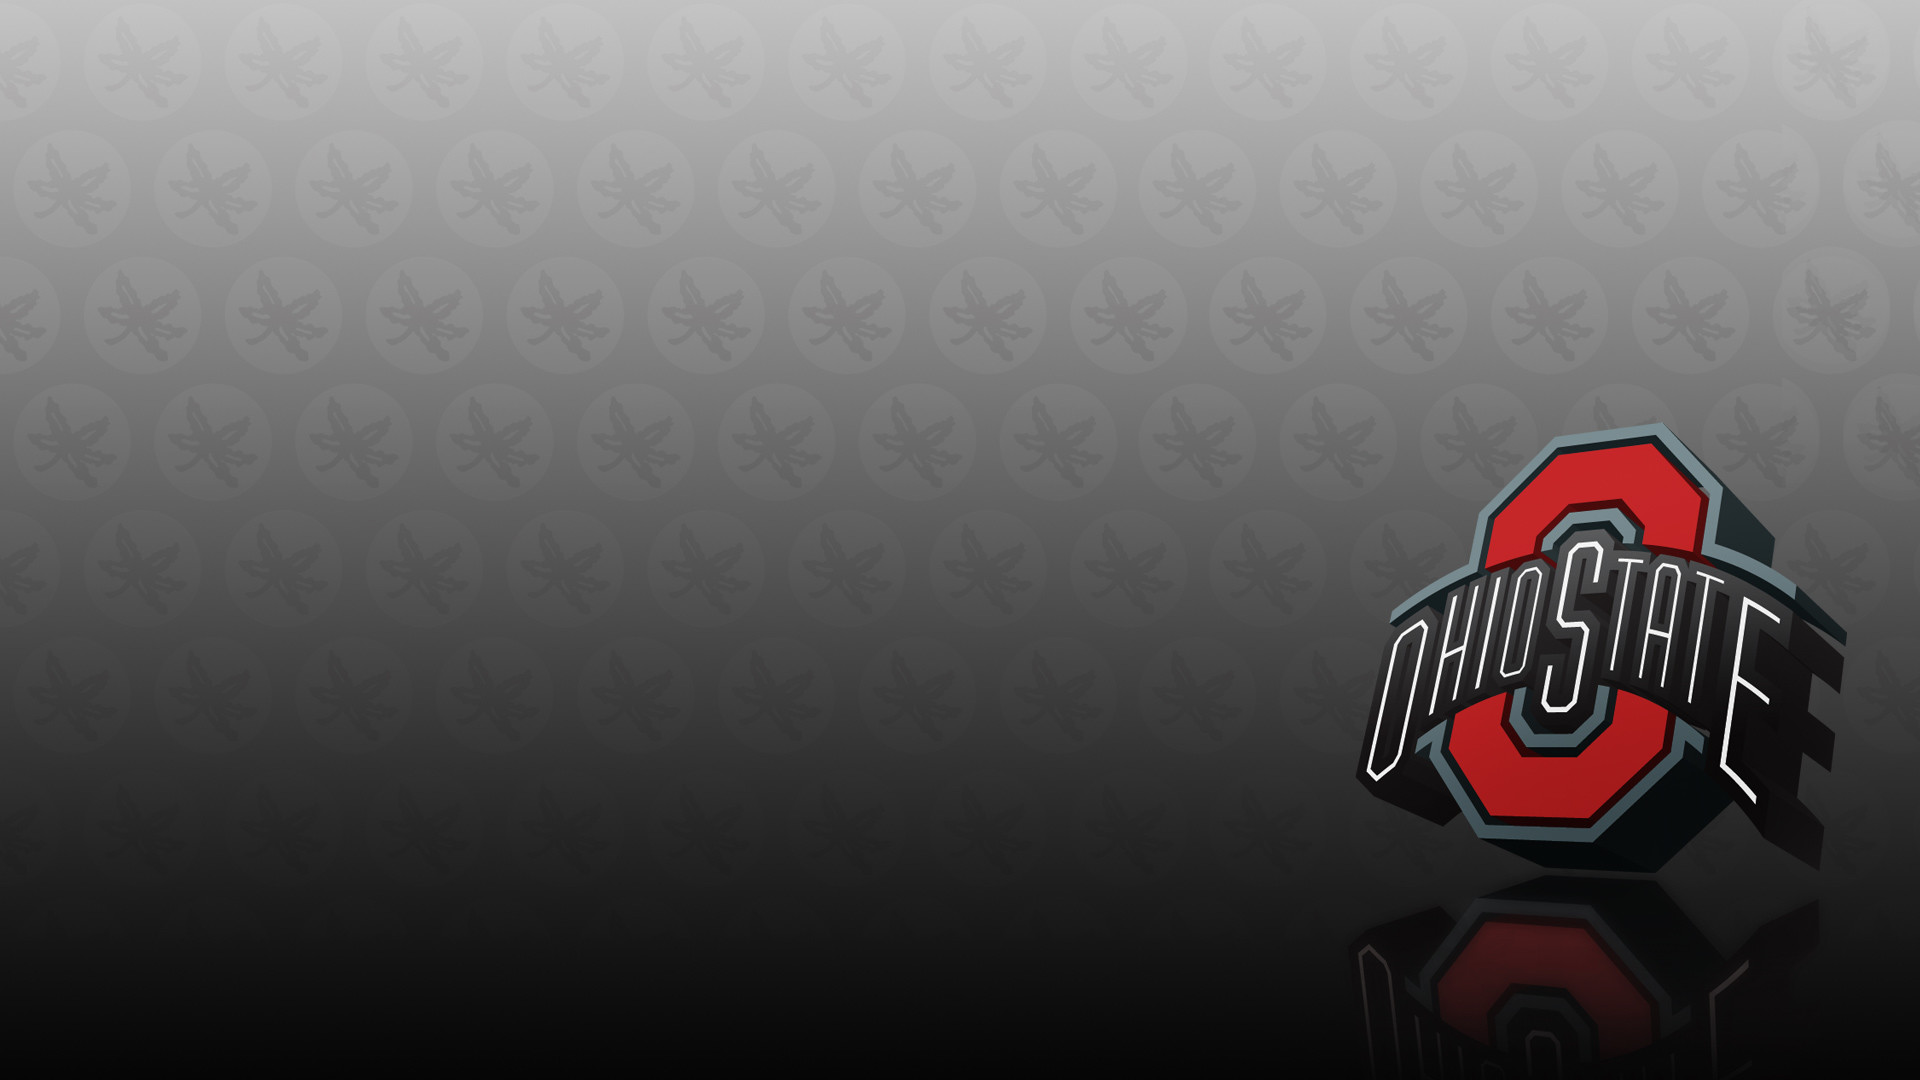 Ohio State Football Hd Wallpaper Ohio State Wallpaper 78 Images